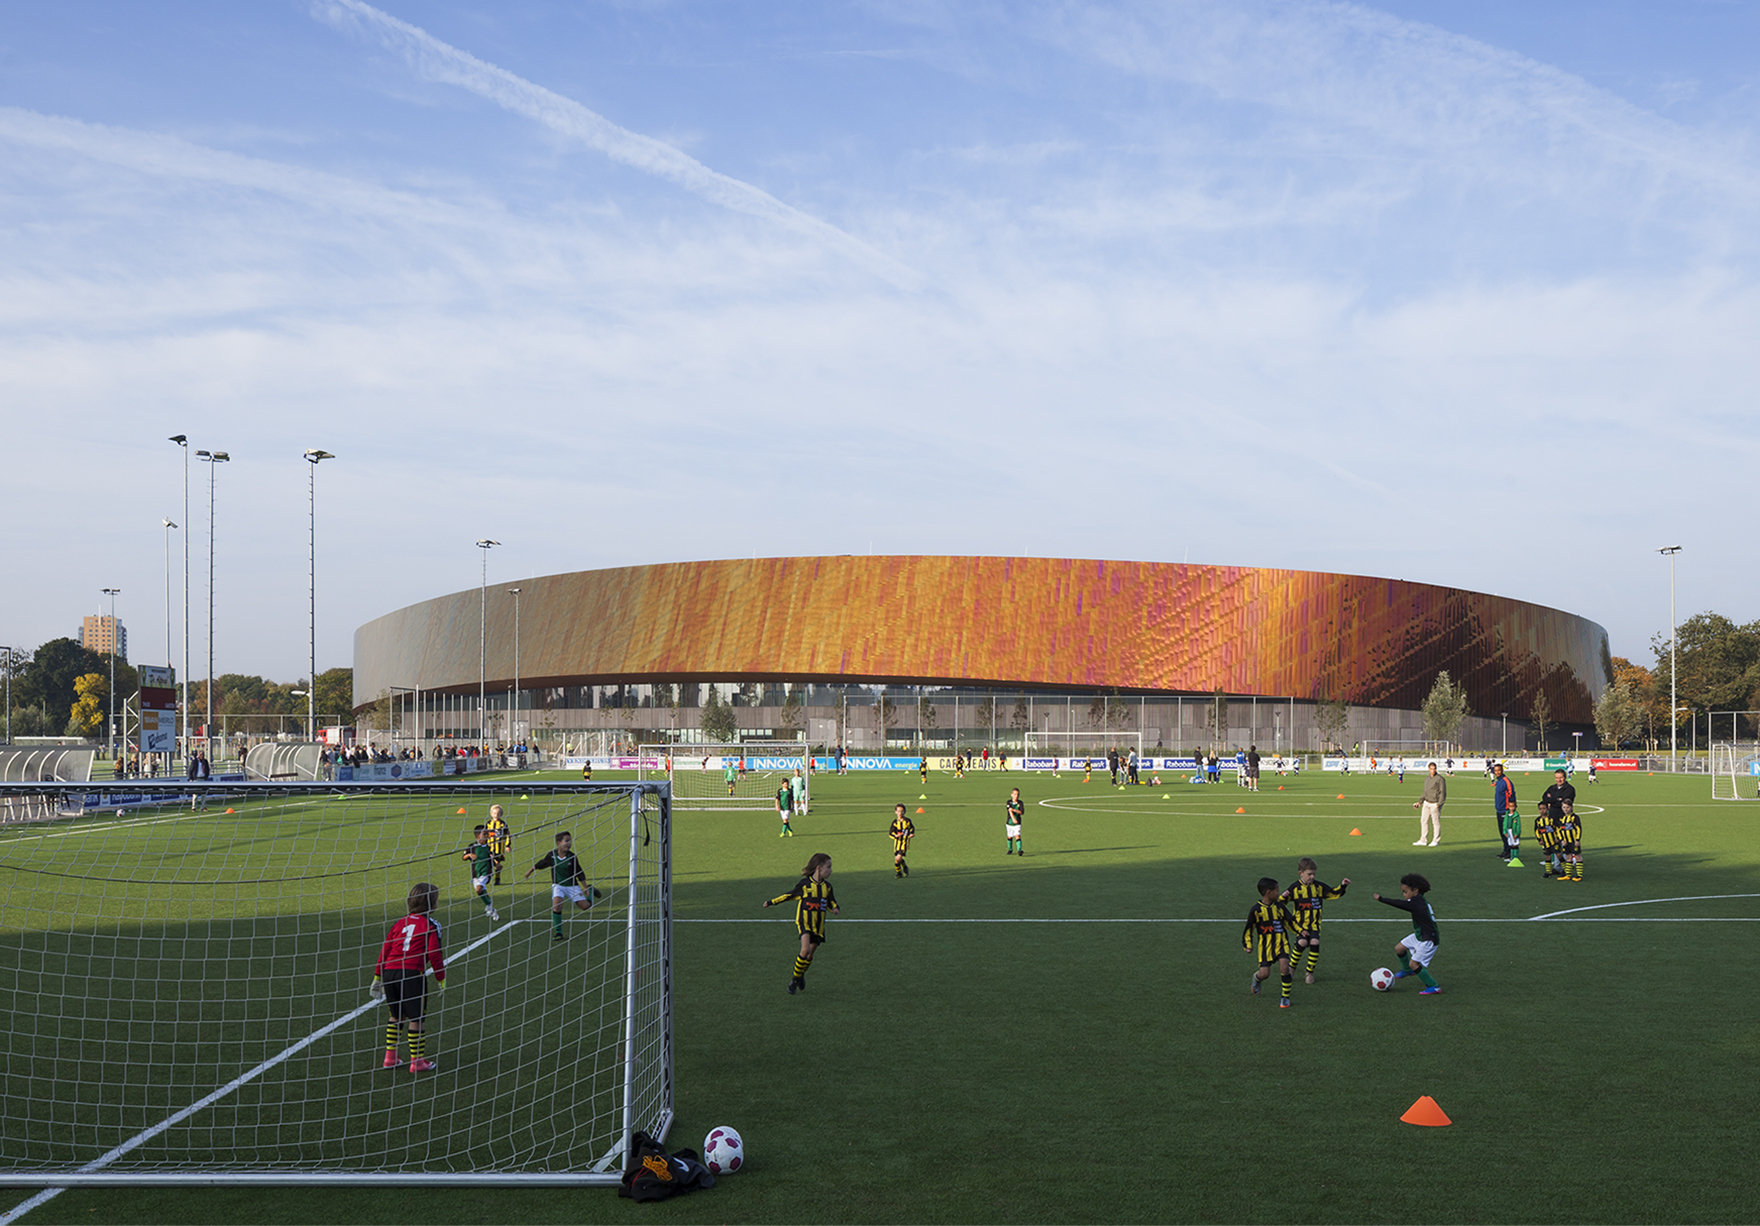 Sportcampus Zuiderpark The Hague Den Haag Netherlands Sport Education Exterior View From Sports Pitches Lh